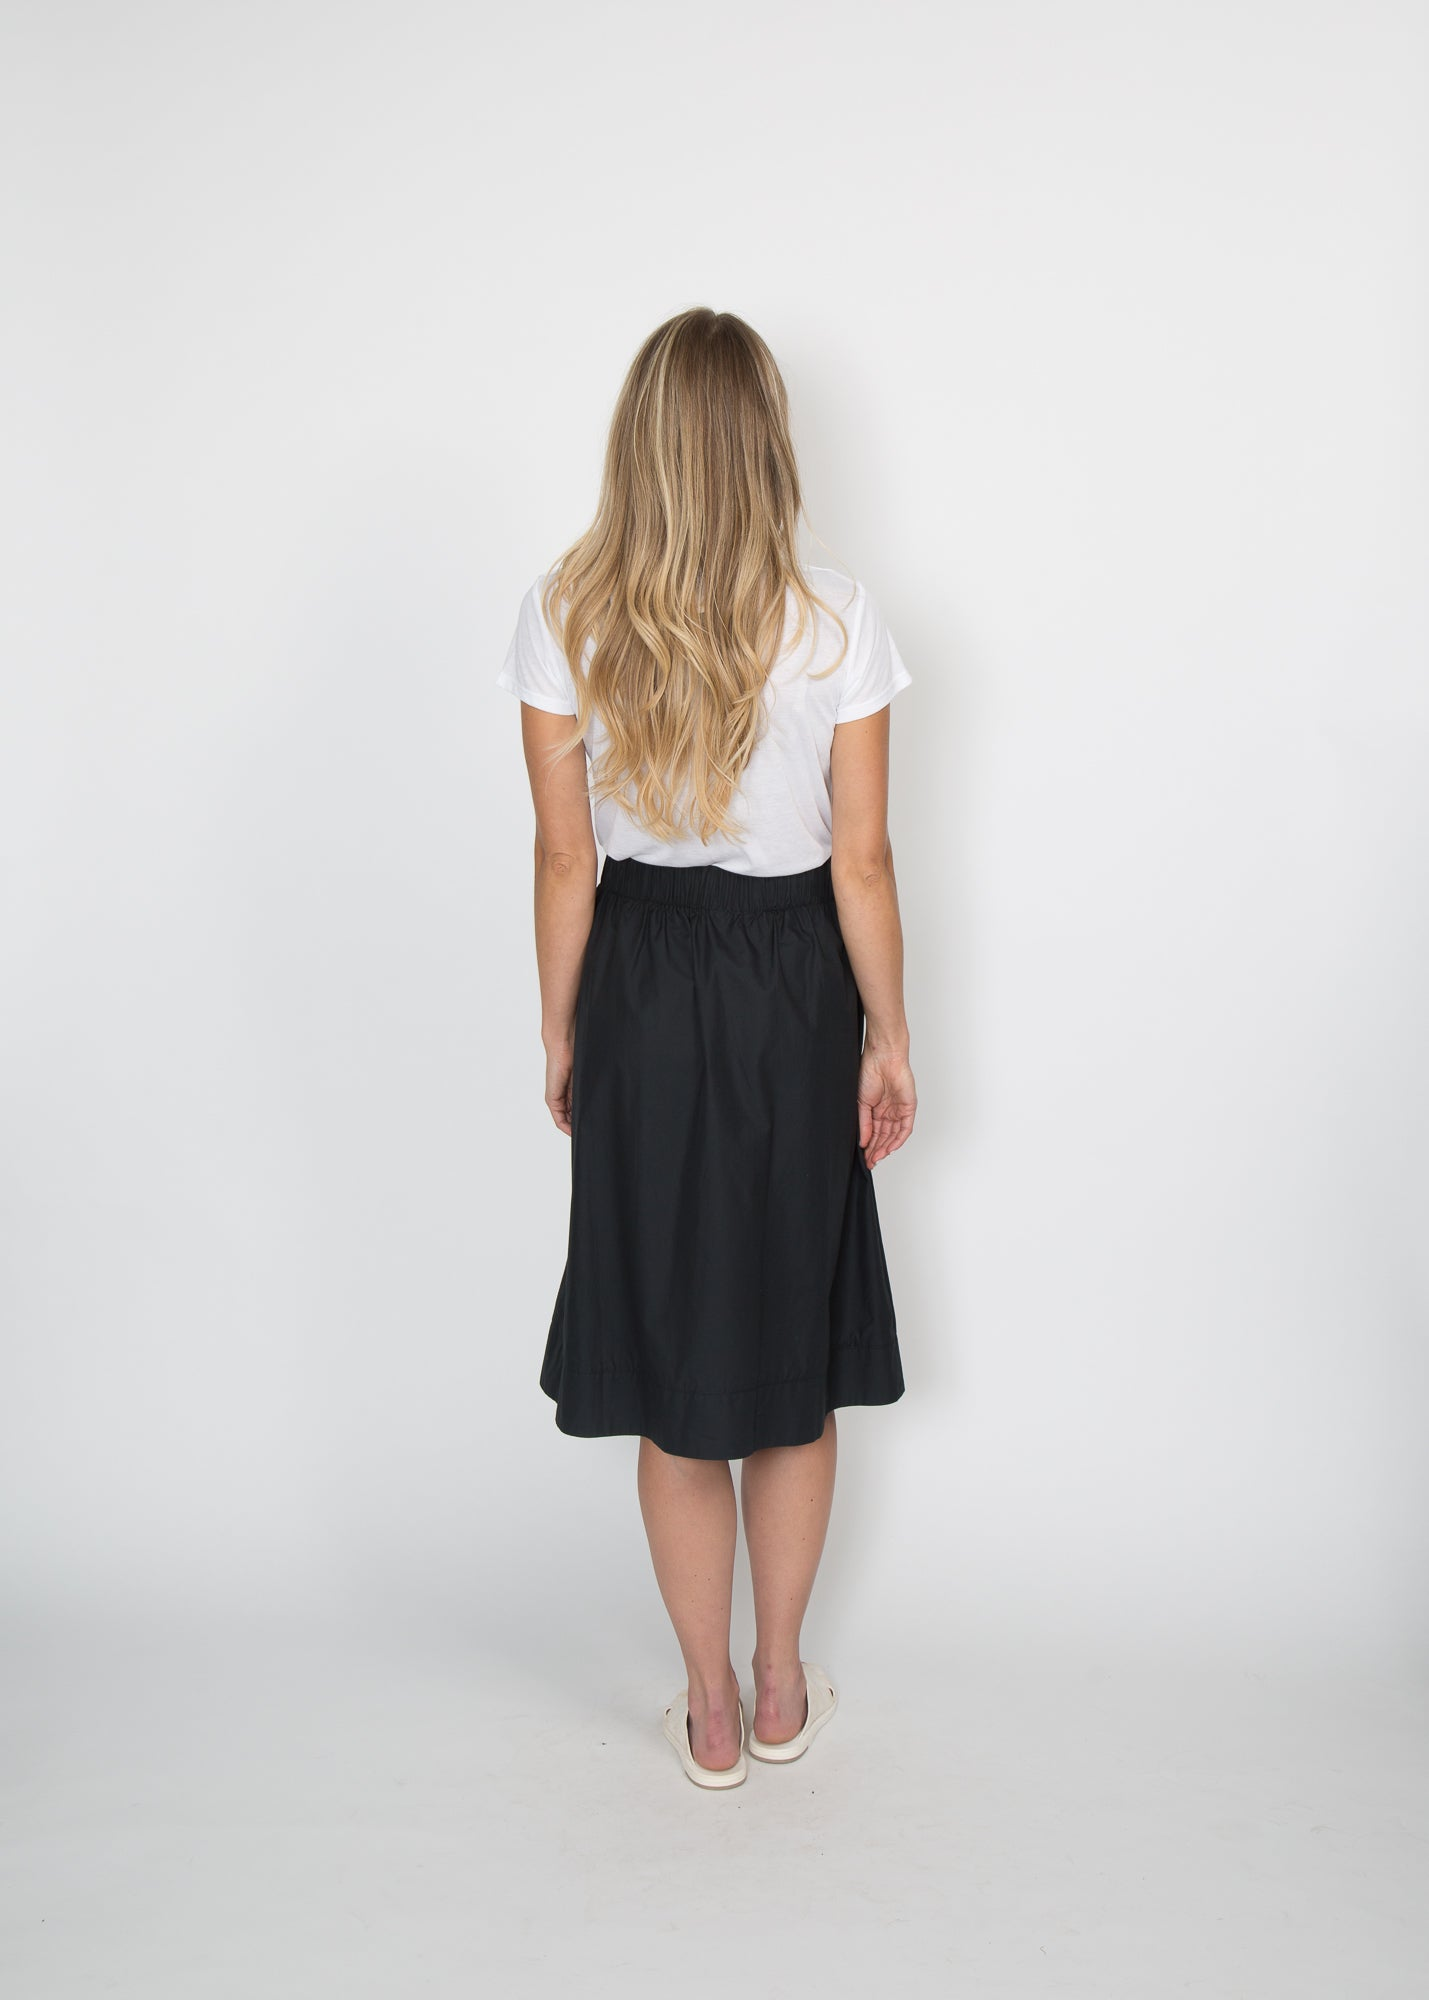 SBJ Austin Alex Skirt